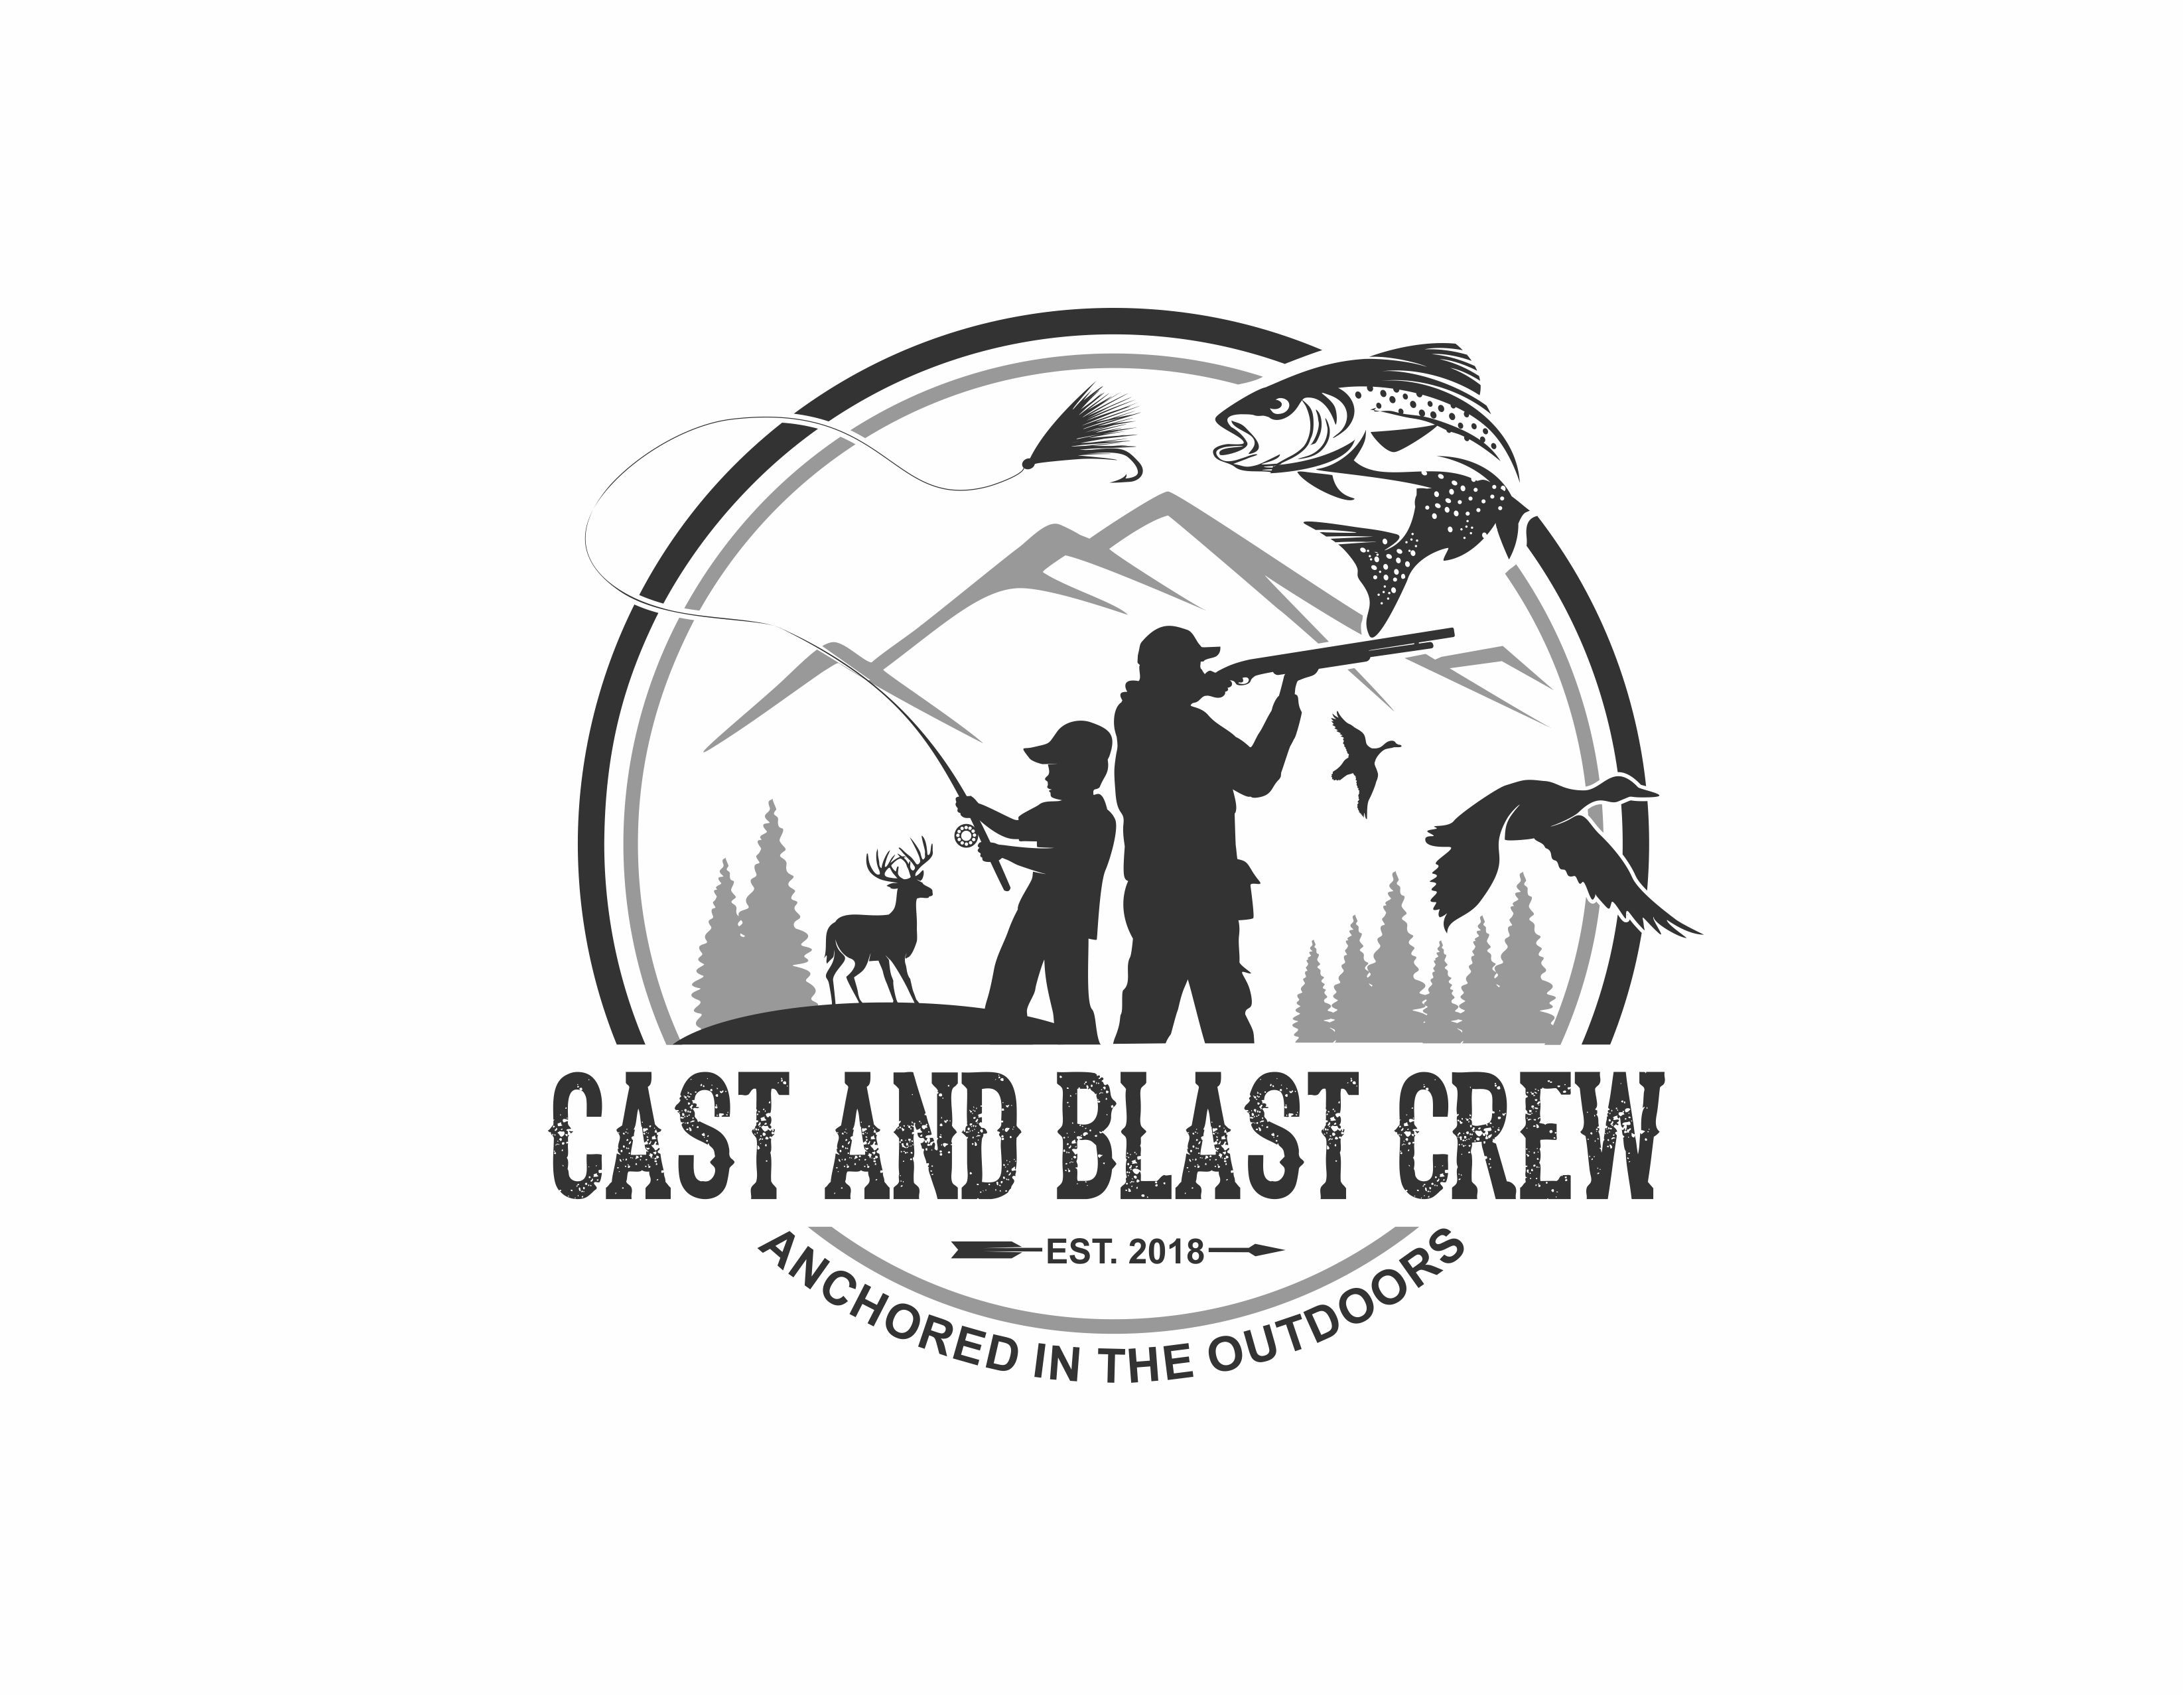 Outdoor hunting and fishing guiding business in need of a logo